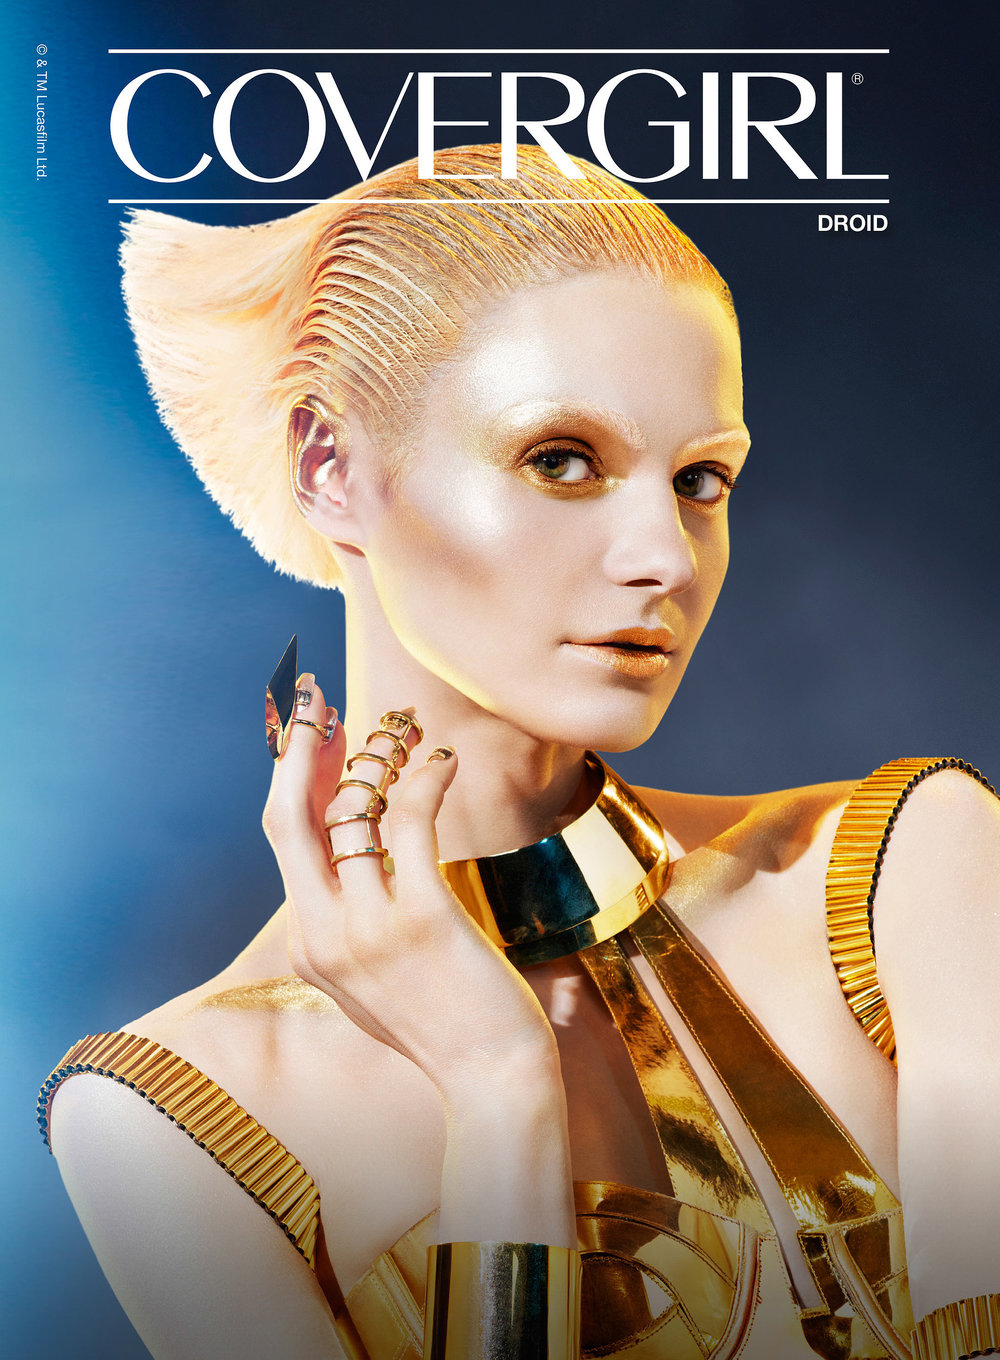 CoverGirl-Droid-Look.jpg